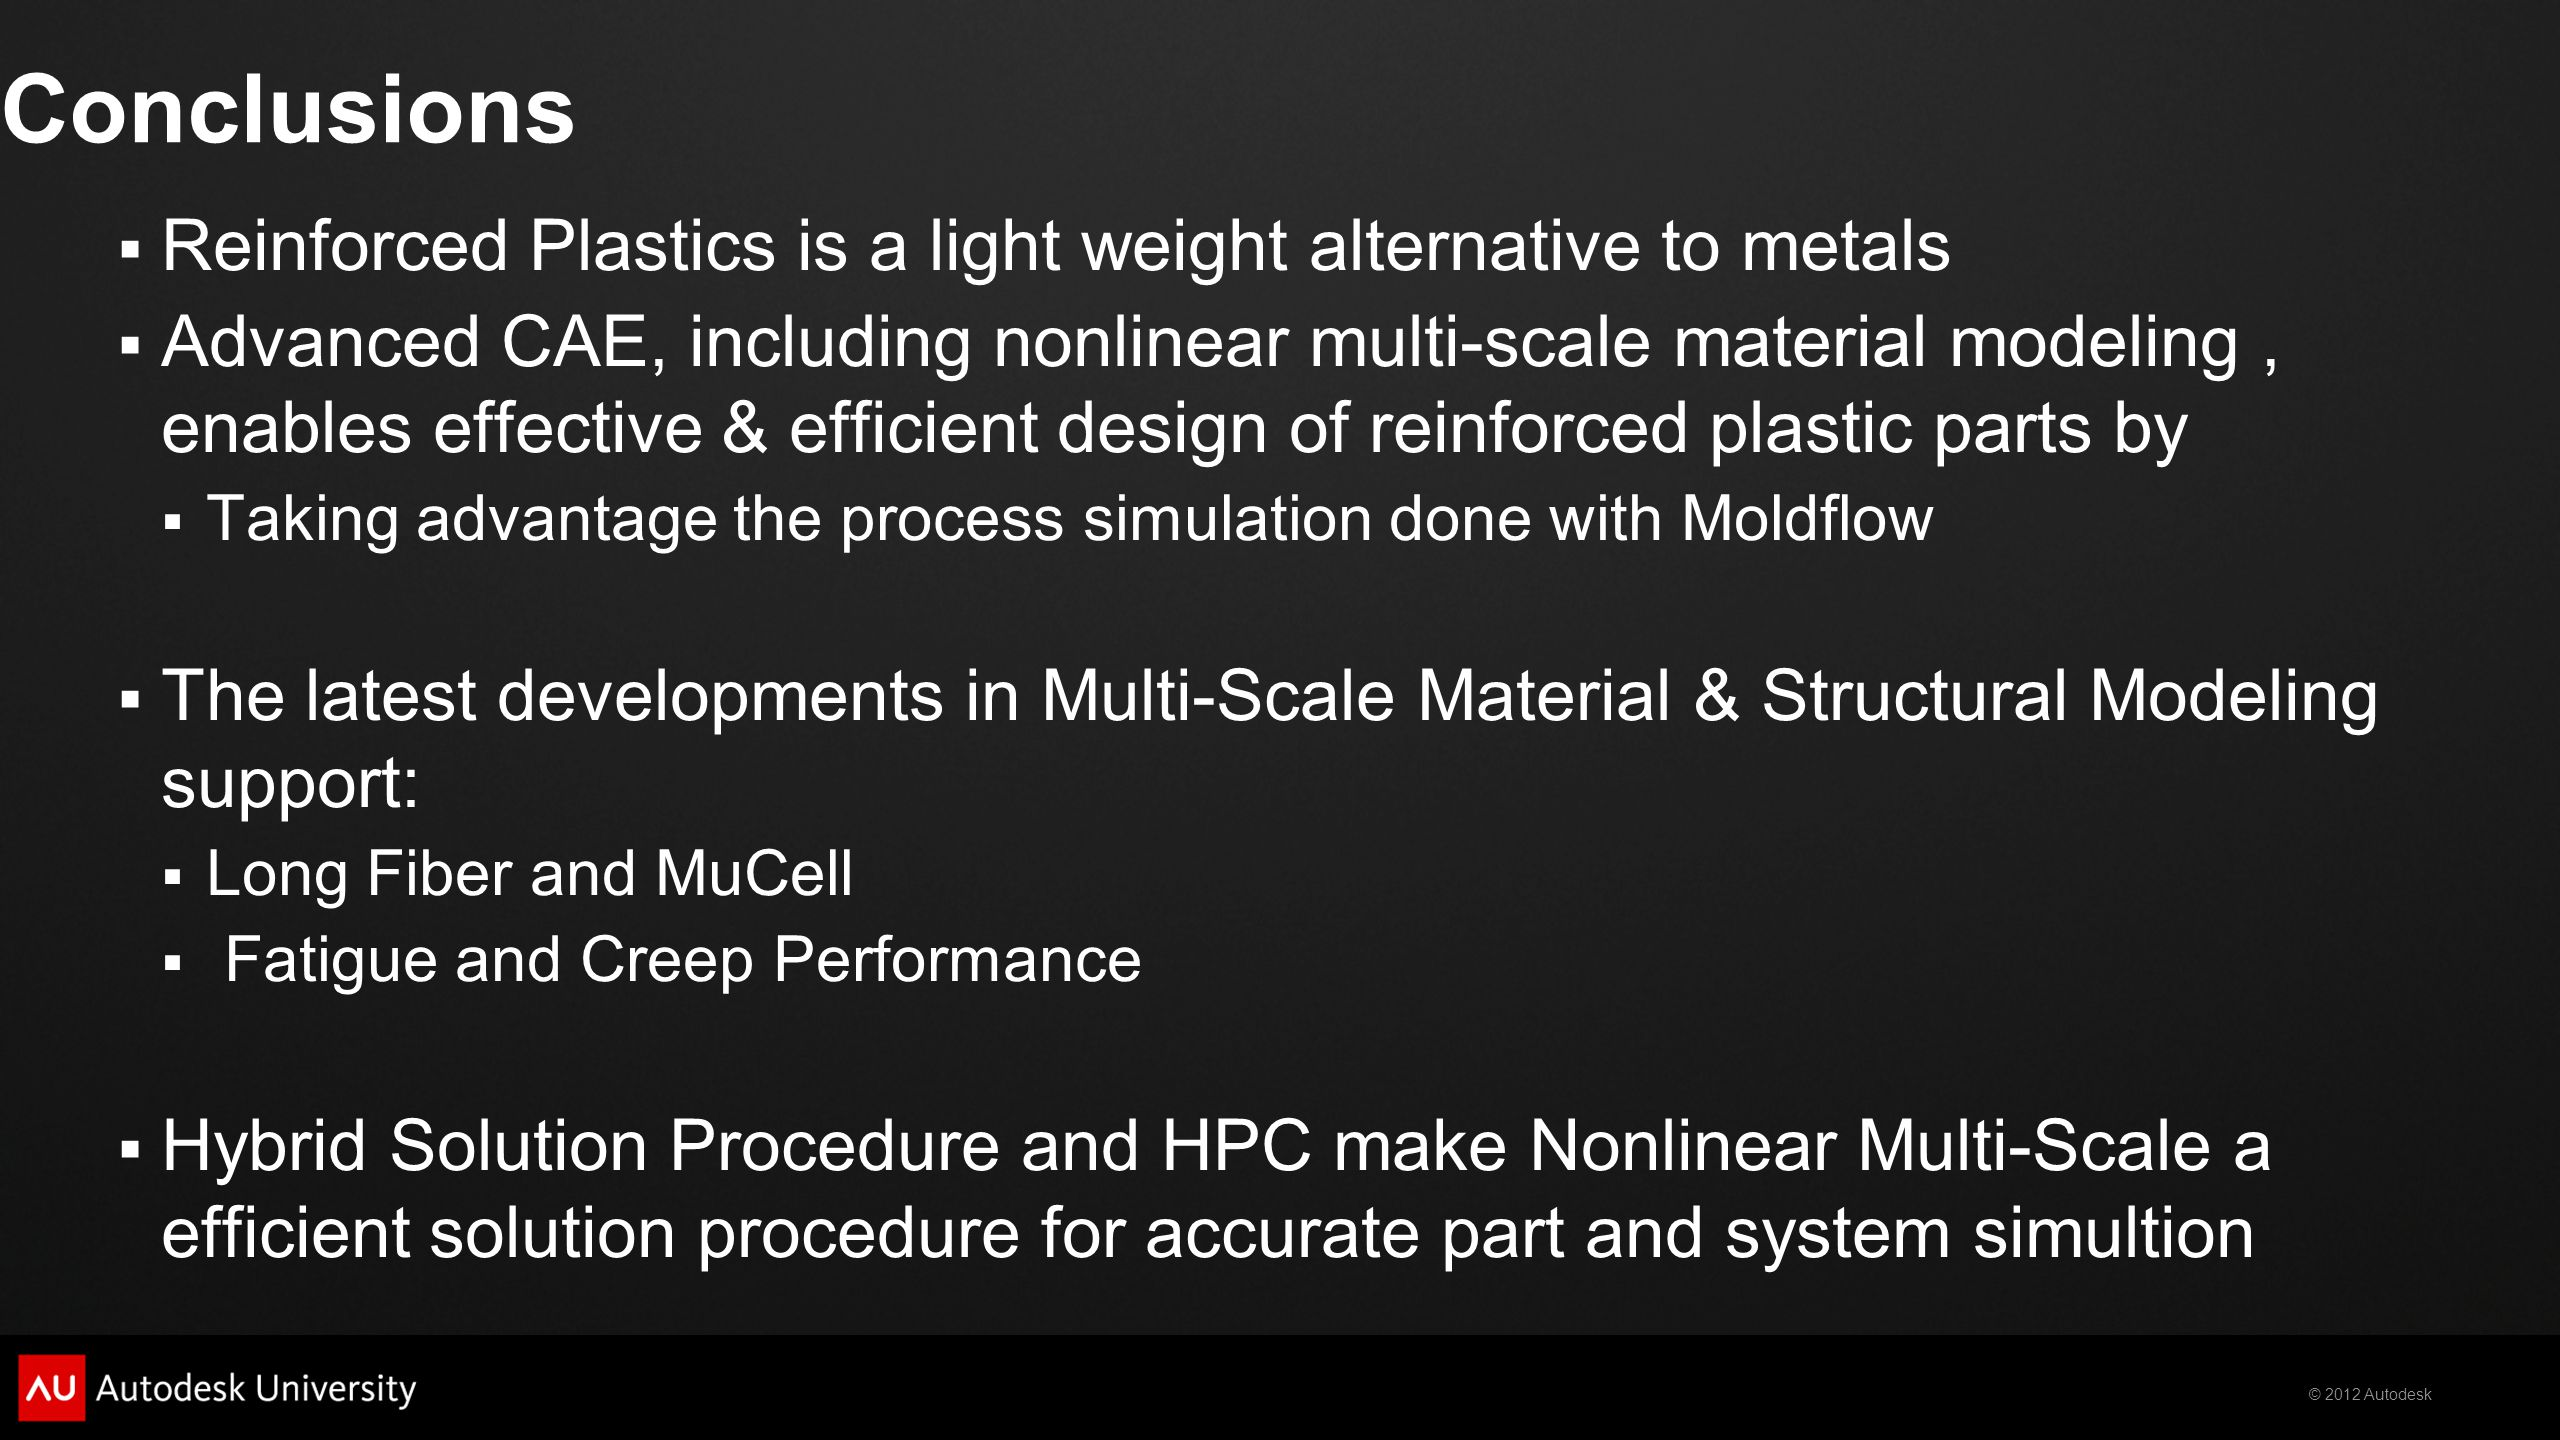 Conclusions Reinforced Plastics is a light weight alternative to metals.